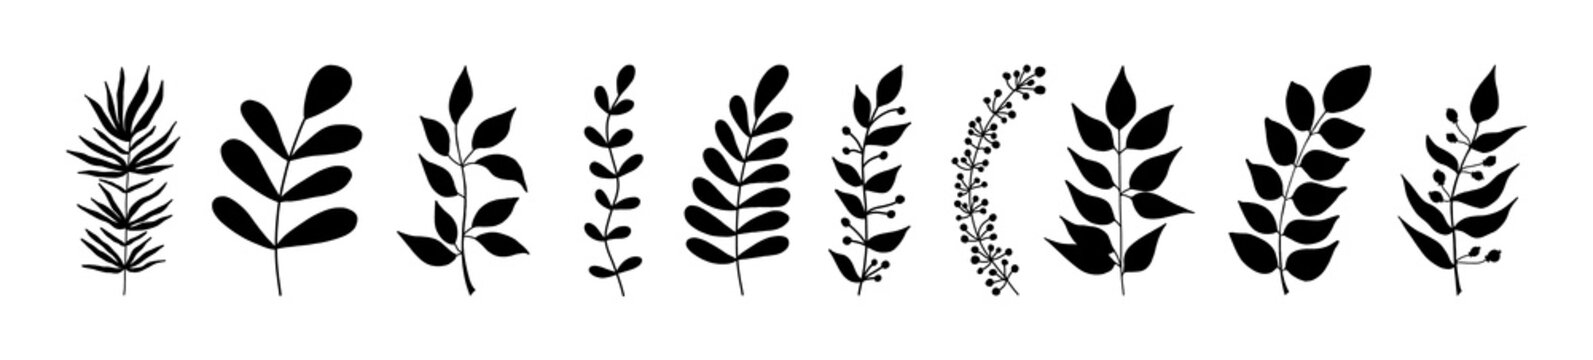 Set of black silhouettes of tropical leaves on an isolated white background. Botanical tree branches, palm leaf on the stem. Spring summer leaf. Concept design logo icons. Vector illustration.